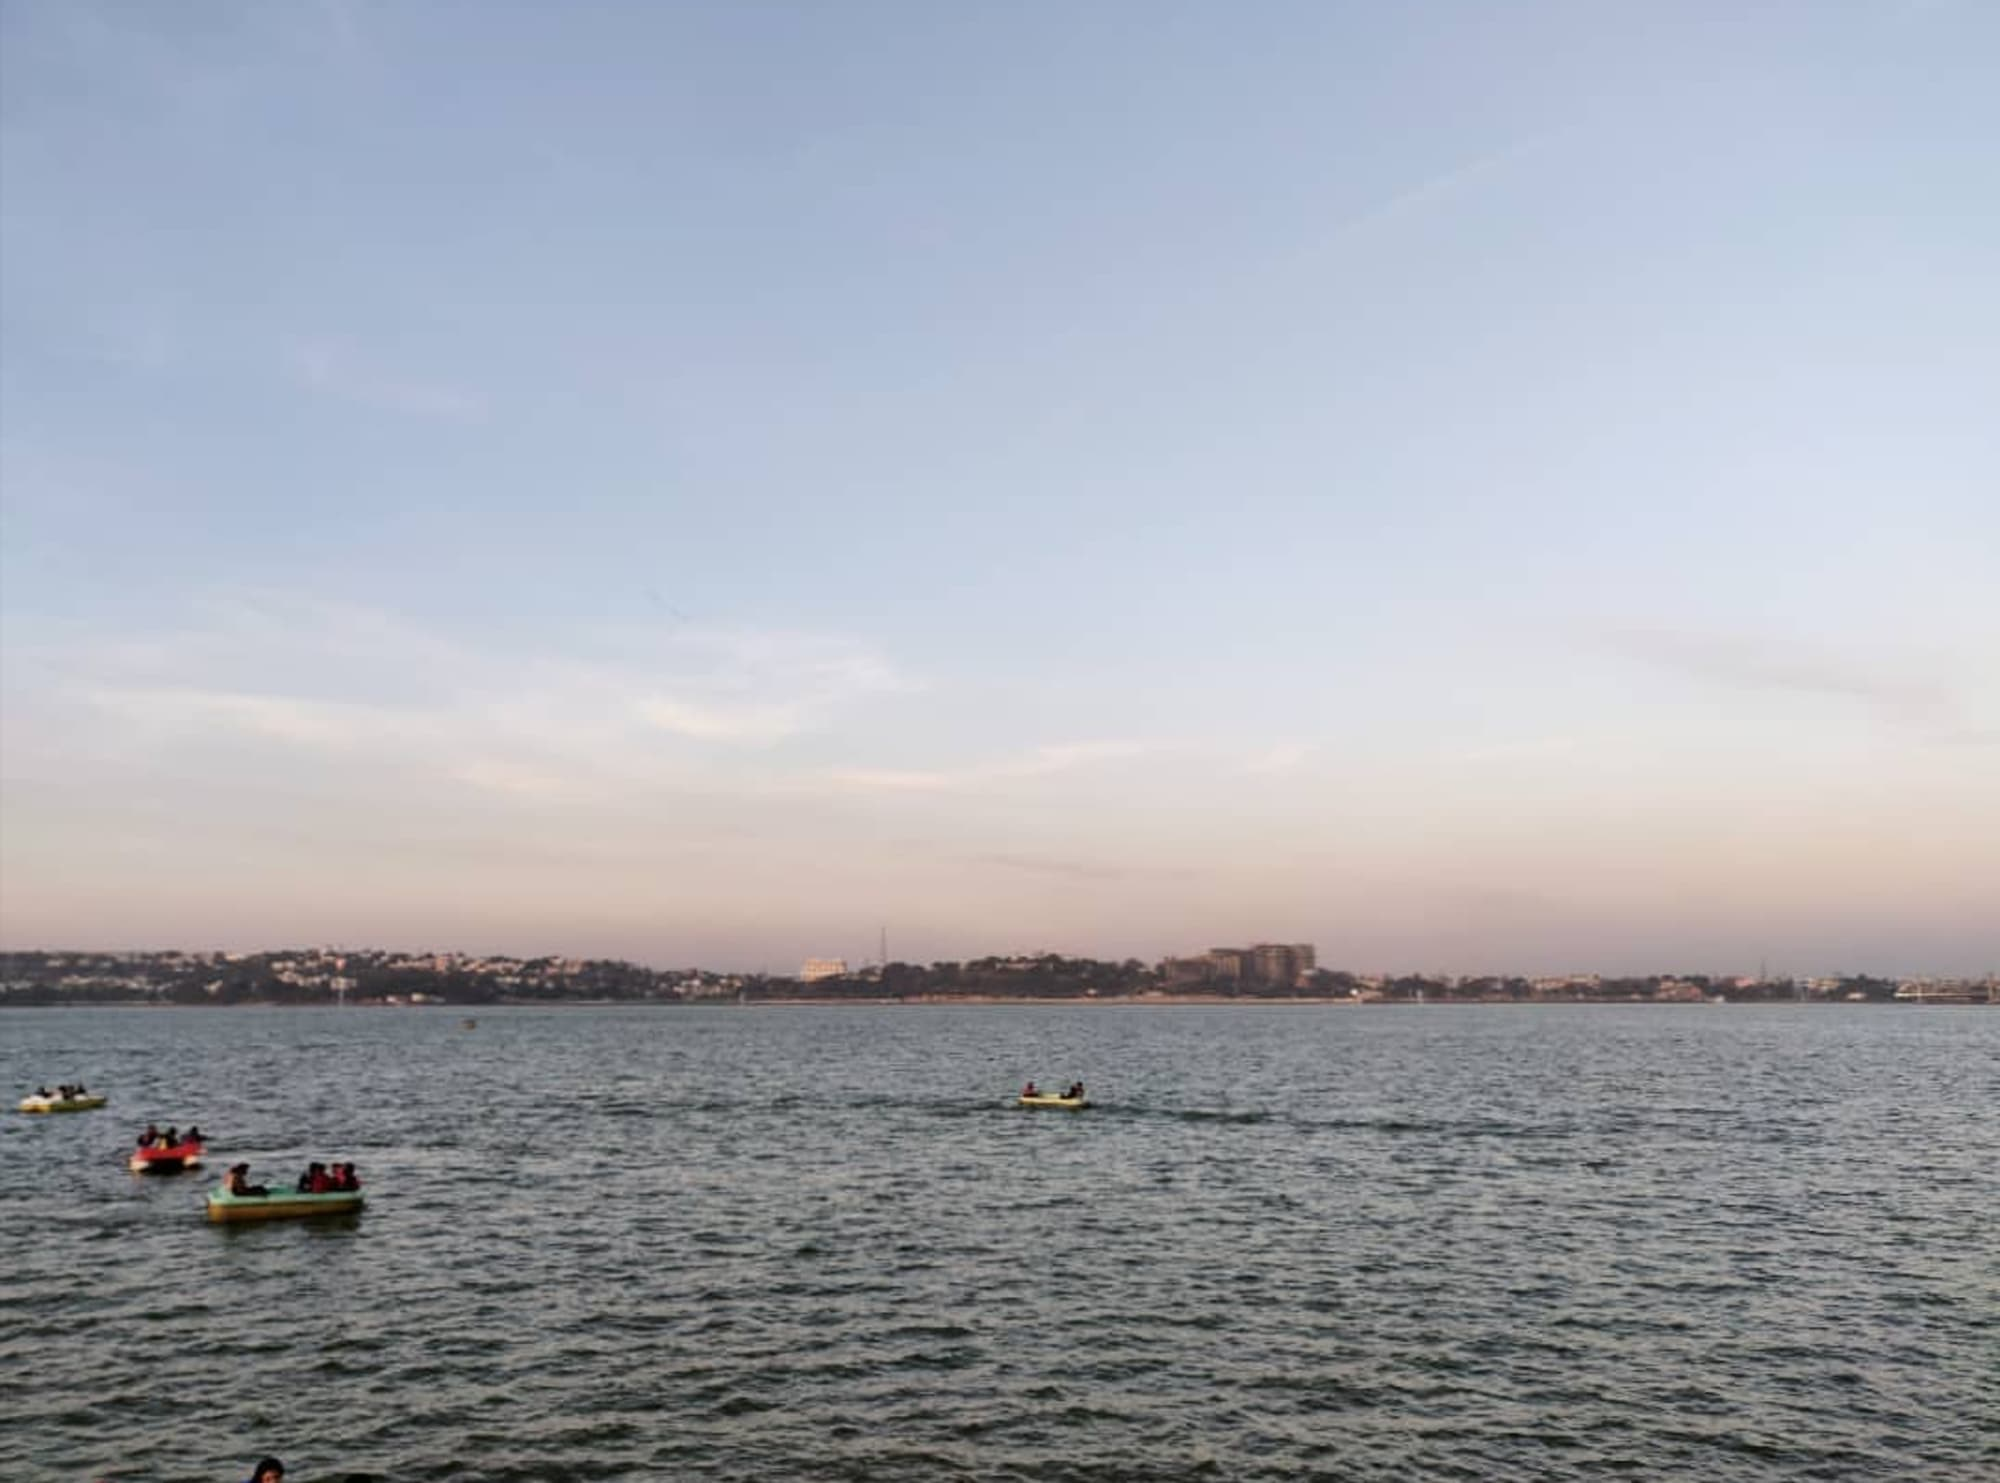 Upper Lake with a skyline of Bhopal city